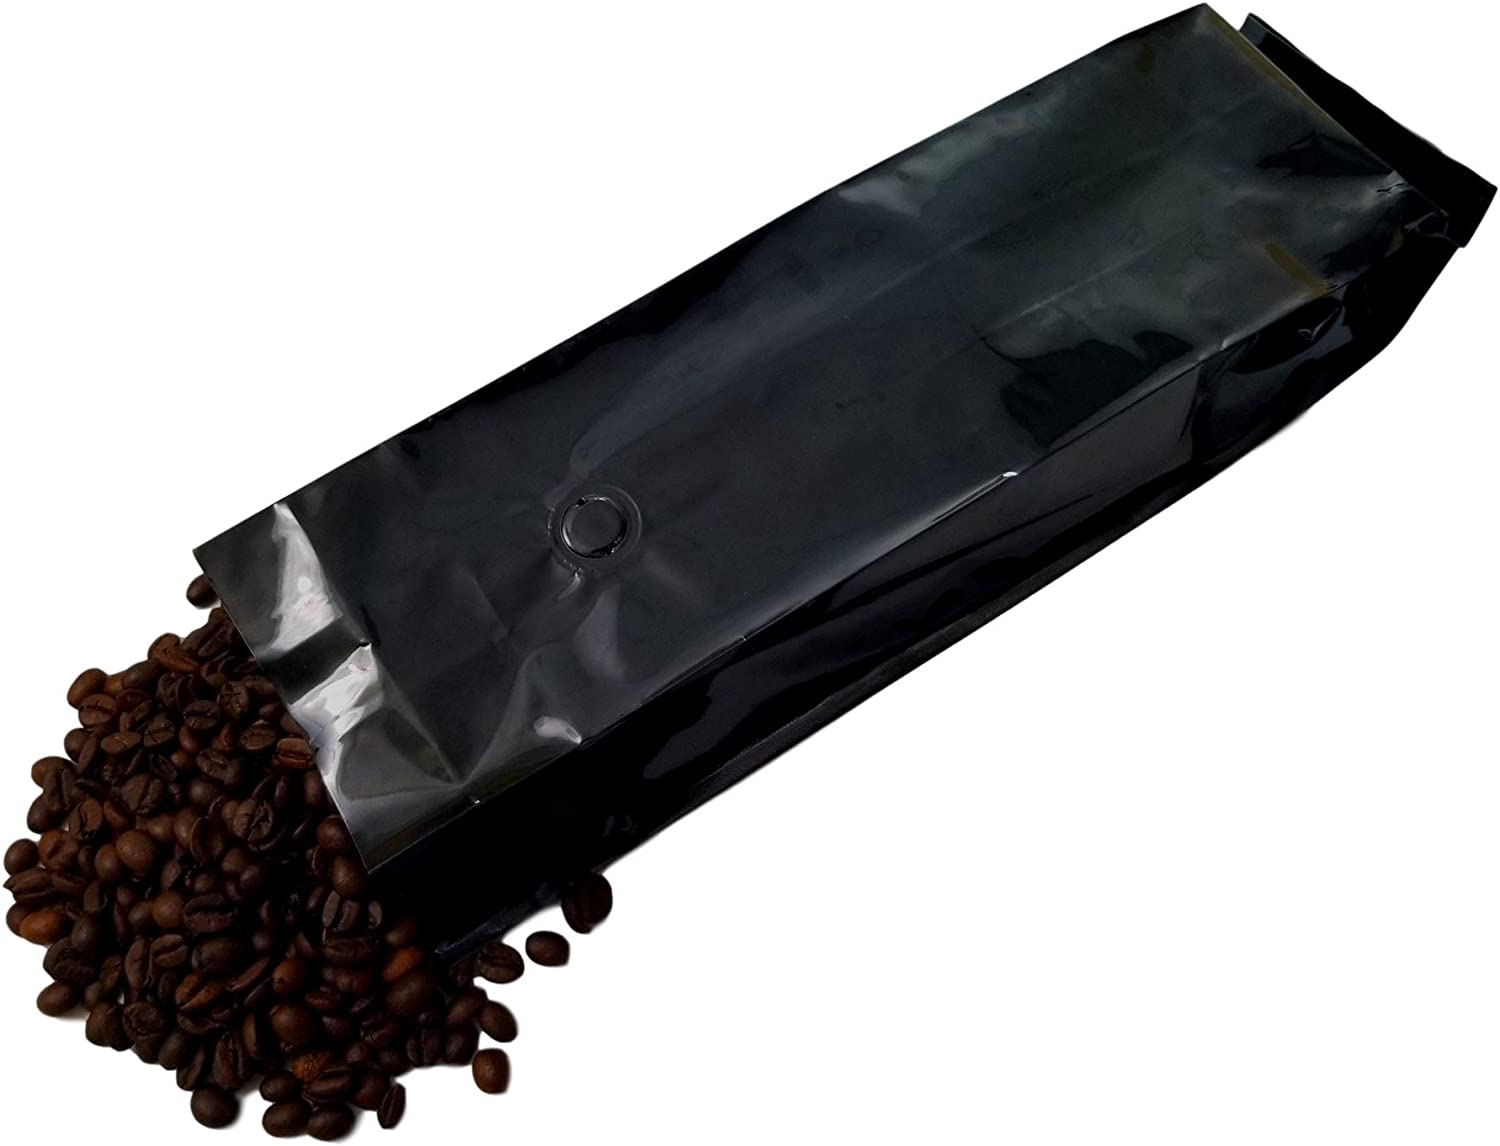 16 oz Foil Coffee Pouch Free Shipping Cheap Bargain Gift - 1 mil Mylar lb Gloss Black Popular products 13